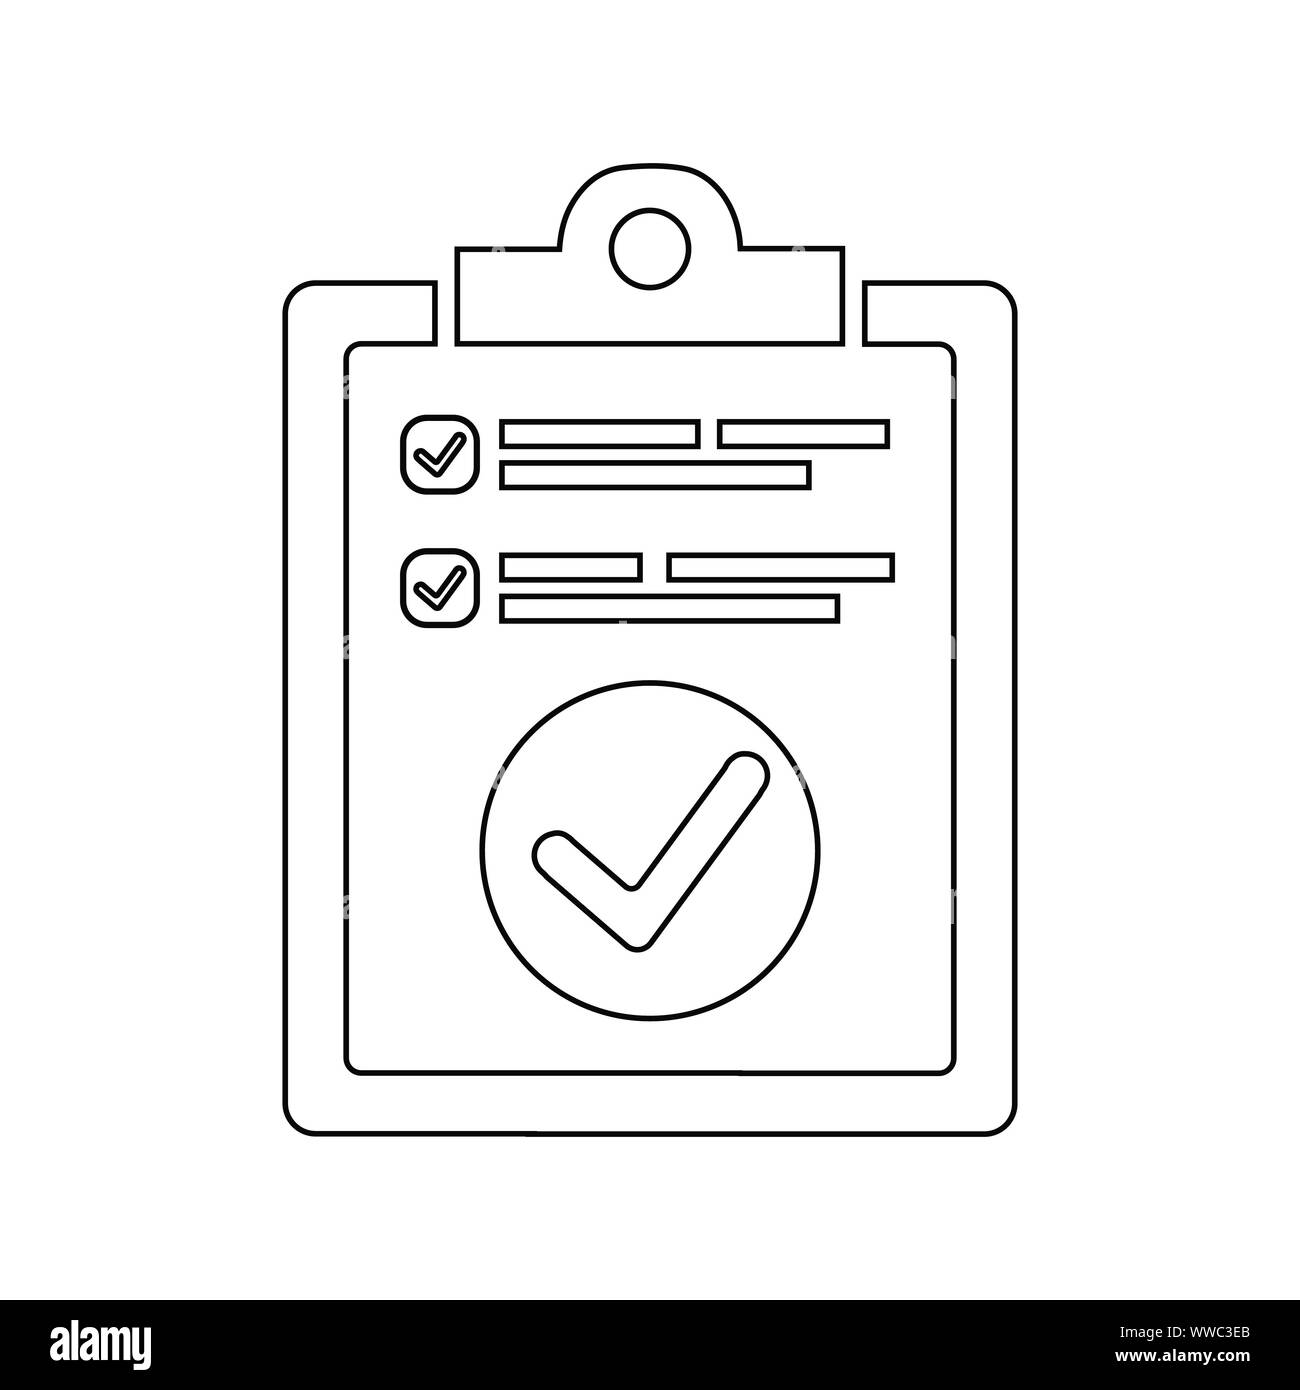 Beautiful design and fully editable Task Complete, Job done, Work Complete Icon for commercial, print media, web or any type of design projects. Stock Vector